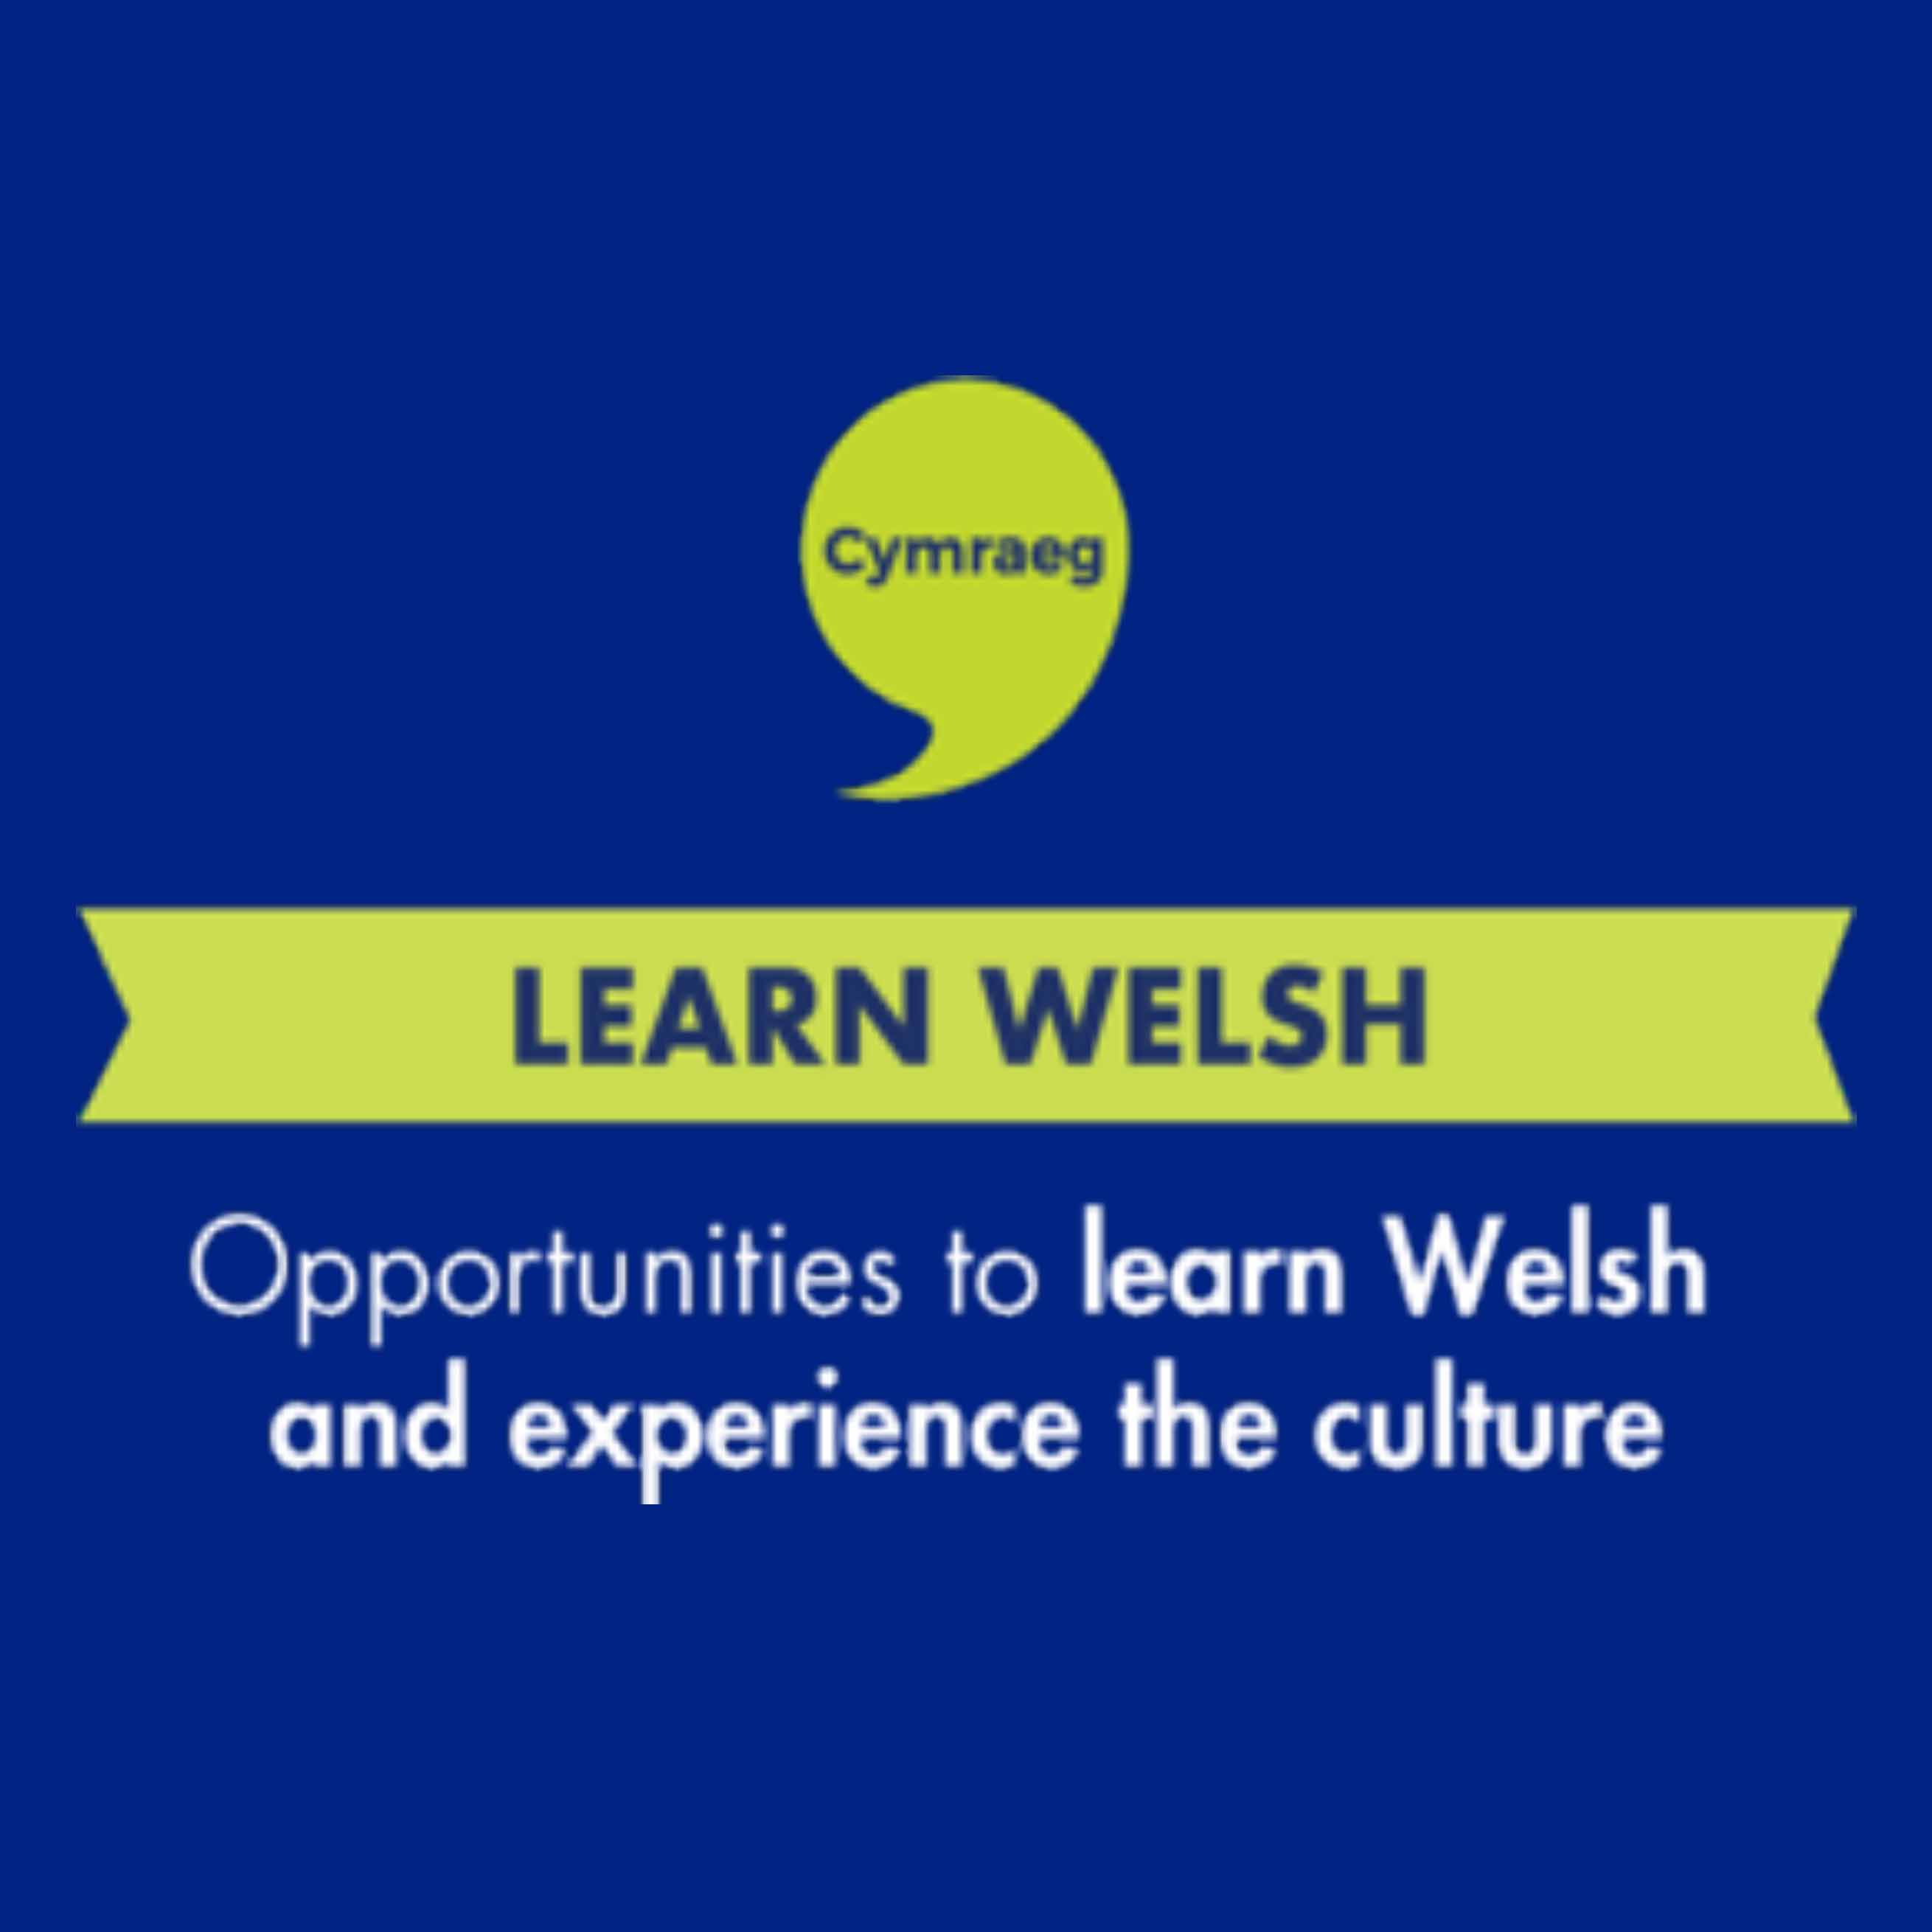 Opportunities to learn Welsh and experience the culture